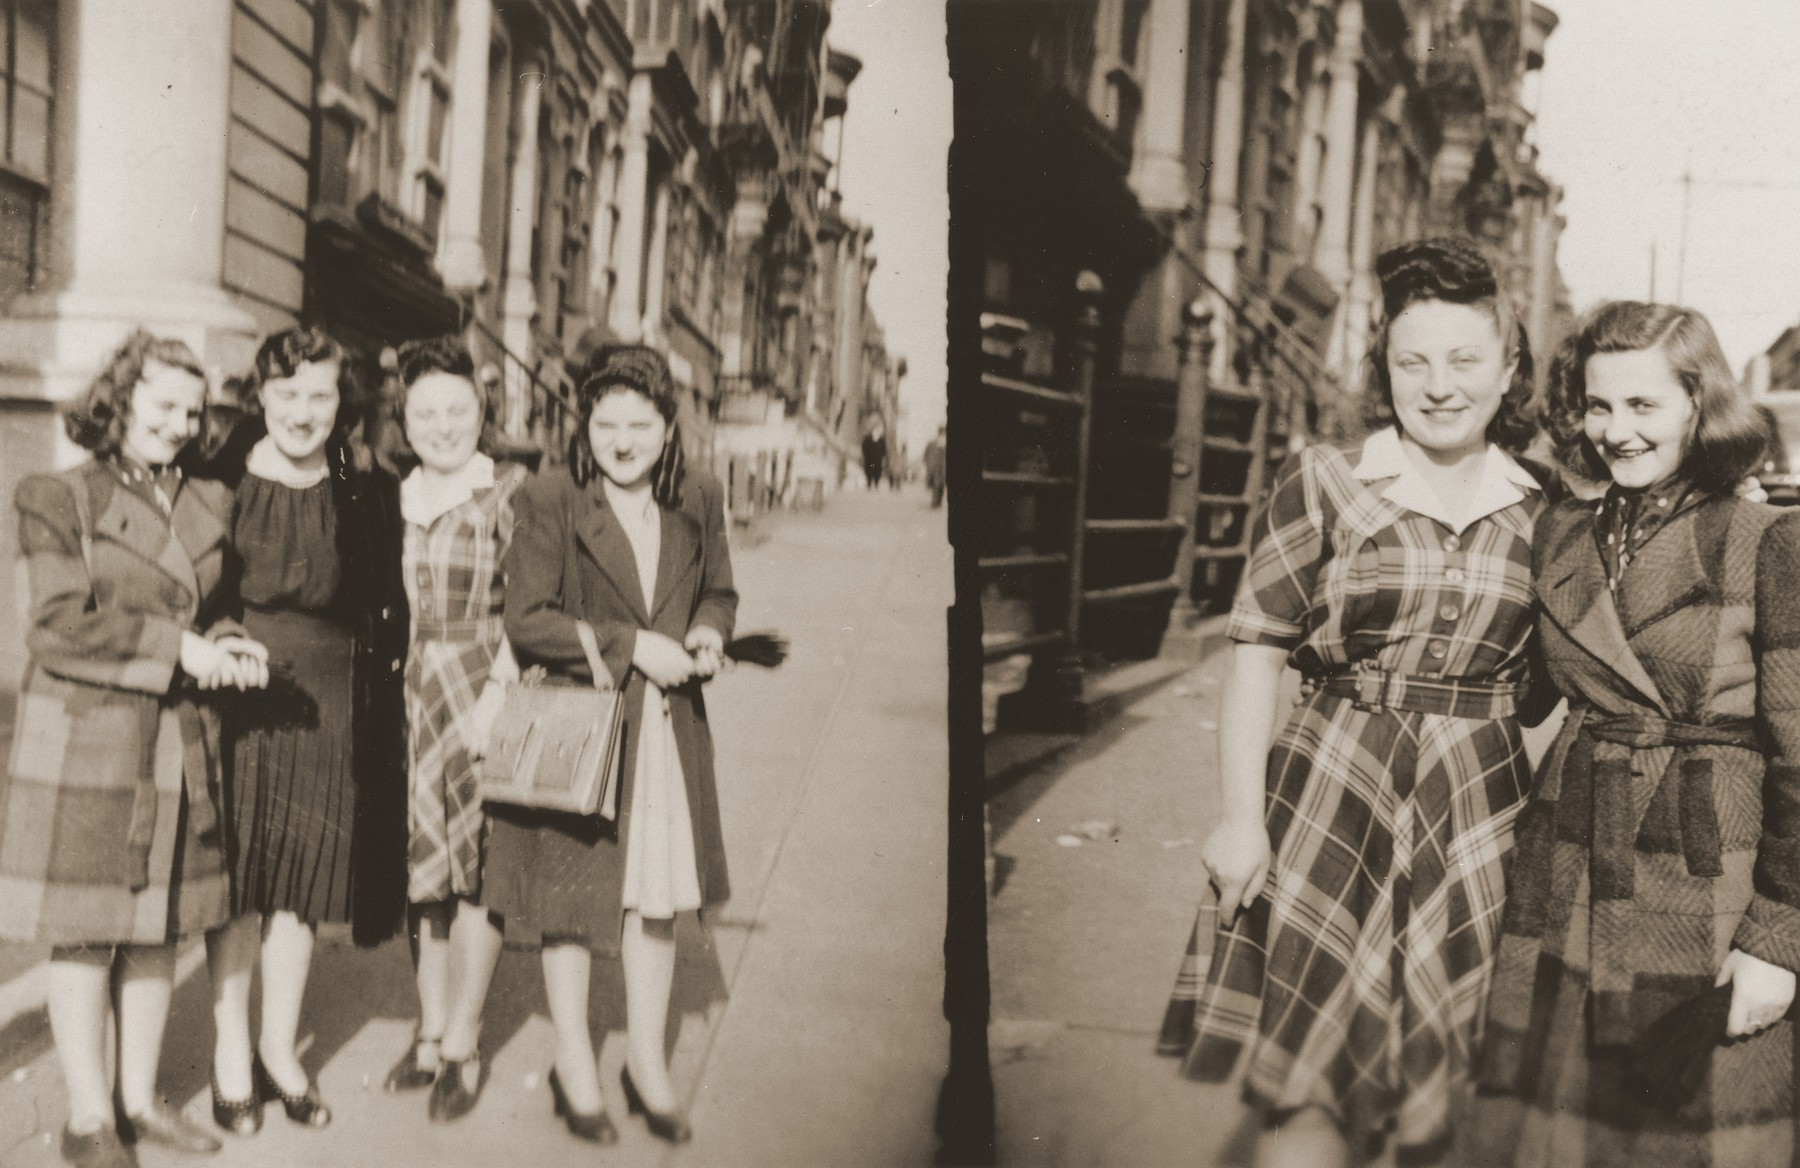 Salusia Goldblum with her aunt Ange Kraicer in front of the Jewish orphanage in the Bronx.